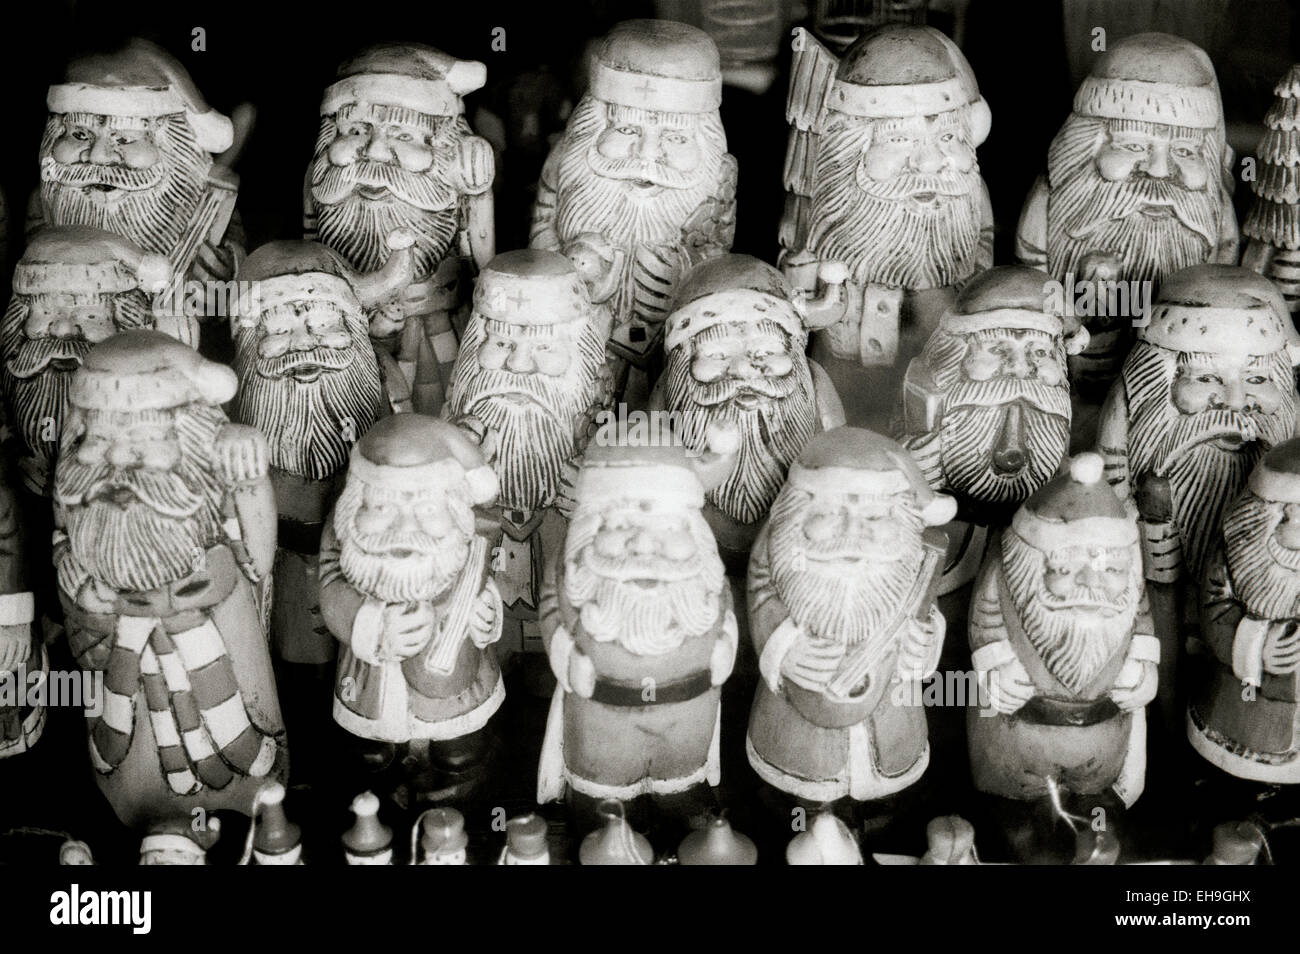 Father Christmas doll in Ubud in Bali in Indonesia in Southeast Asia. Santa Claus Carving Culture modern Fantasy - Stock Image